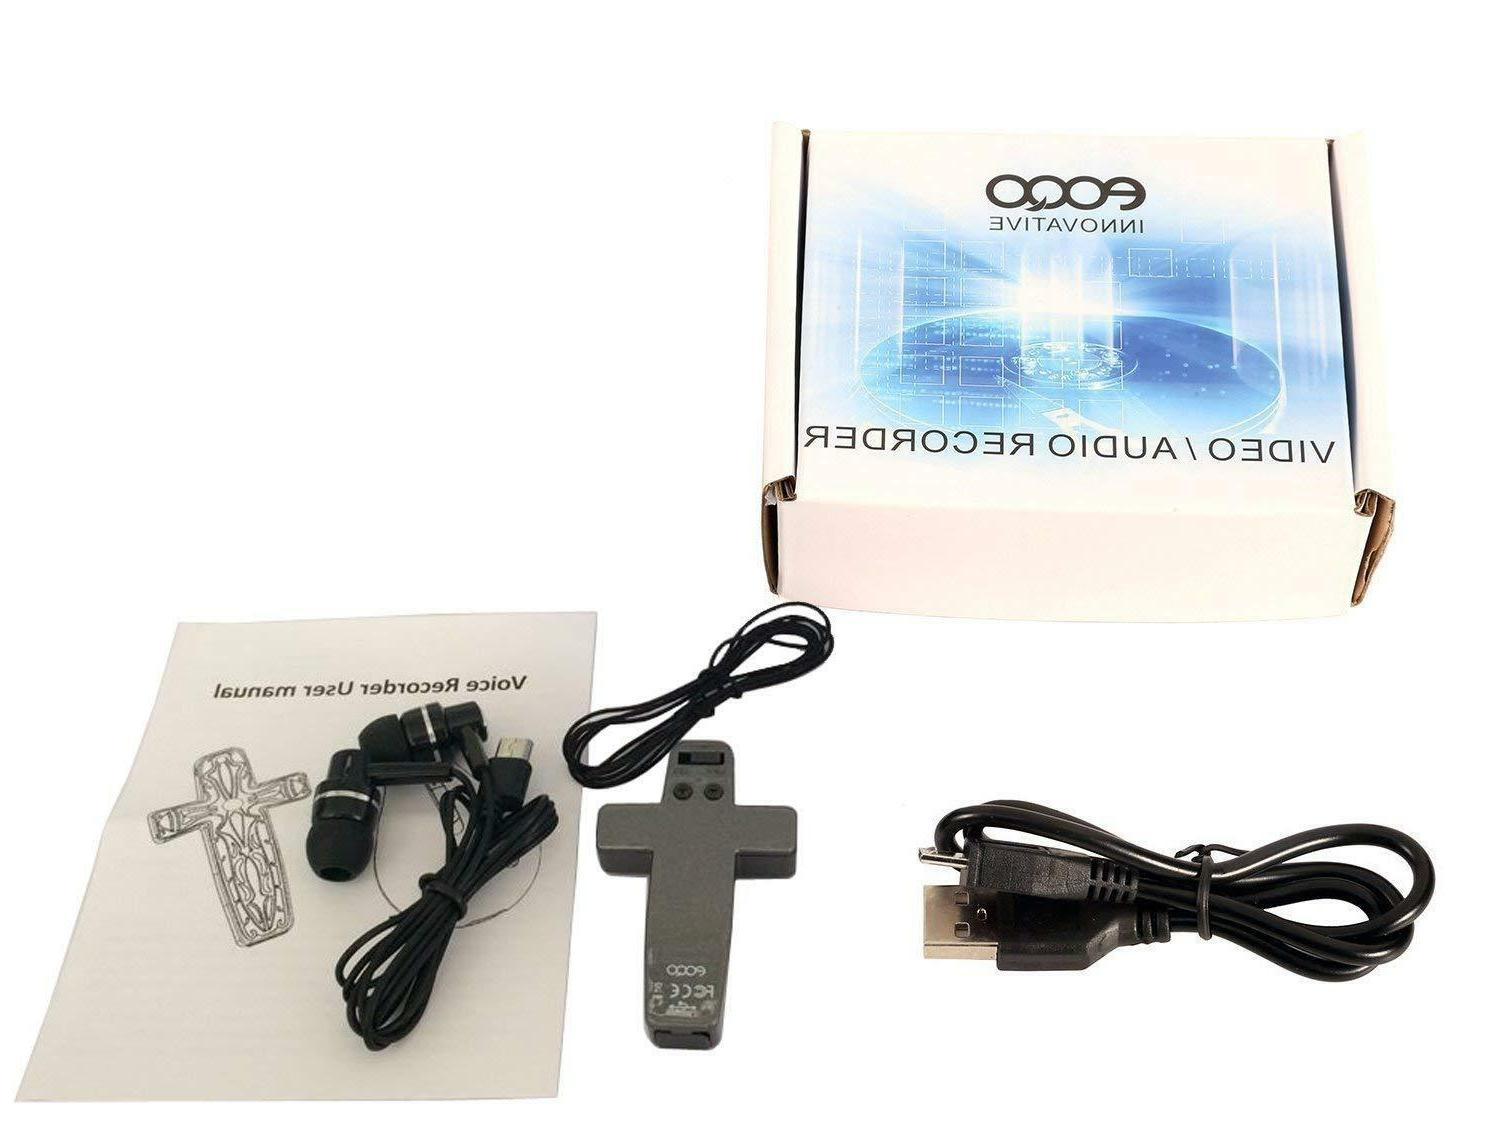 BOOCOSA Model: VR-001/ Multifunction Voice Recorder w/ Ear B